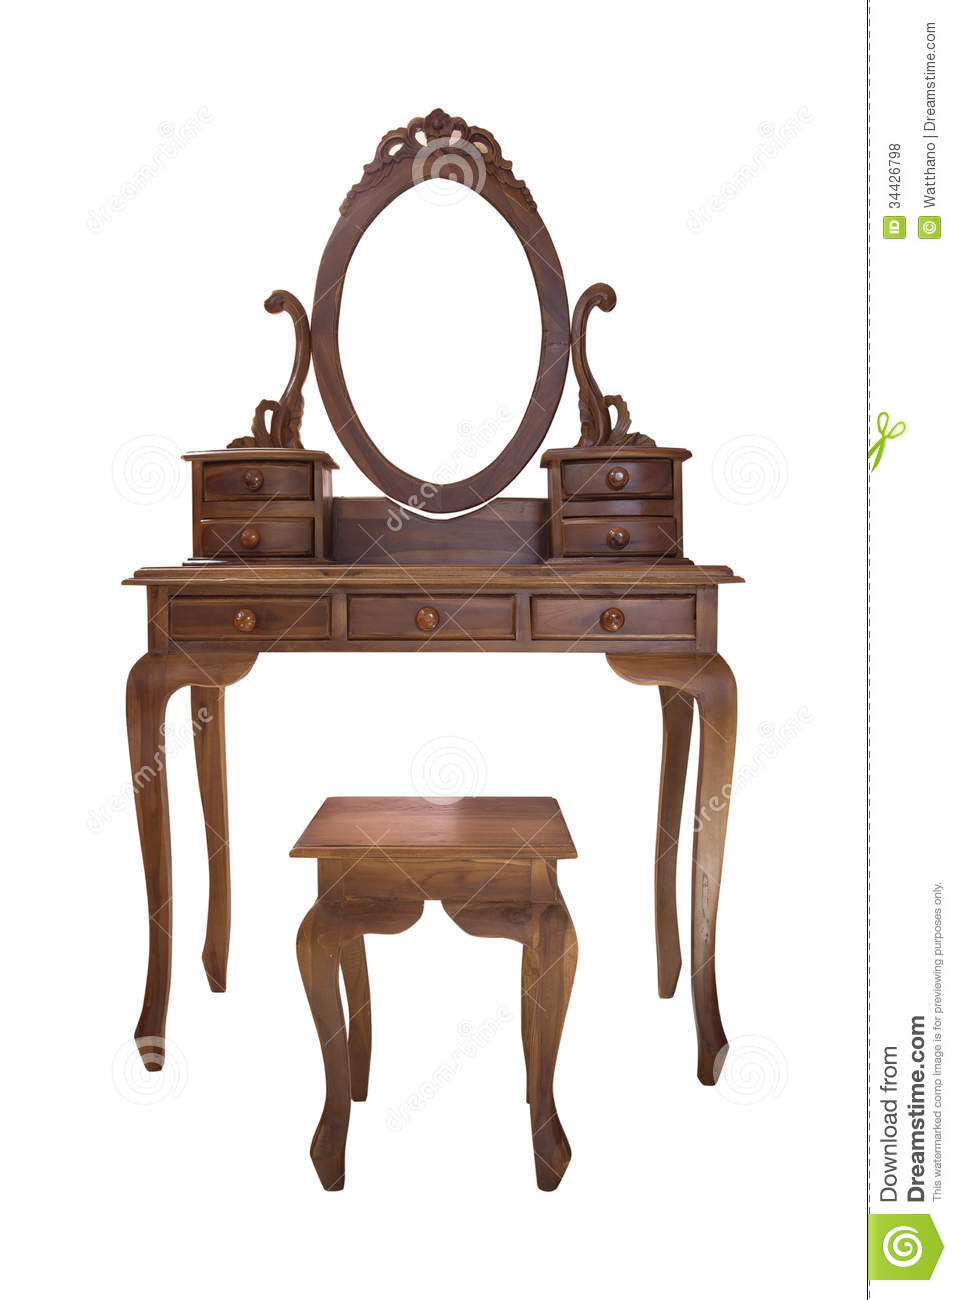 vanity with chair and mirror real leather old wood table stock photo - image: 34426798